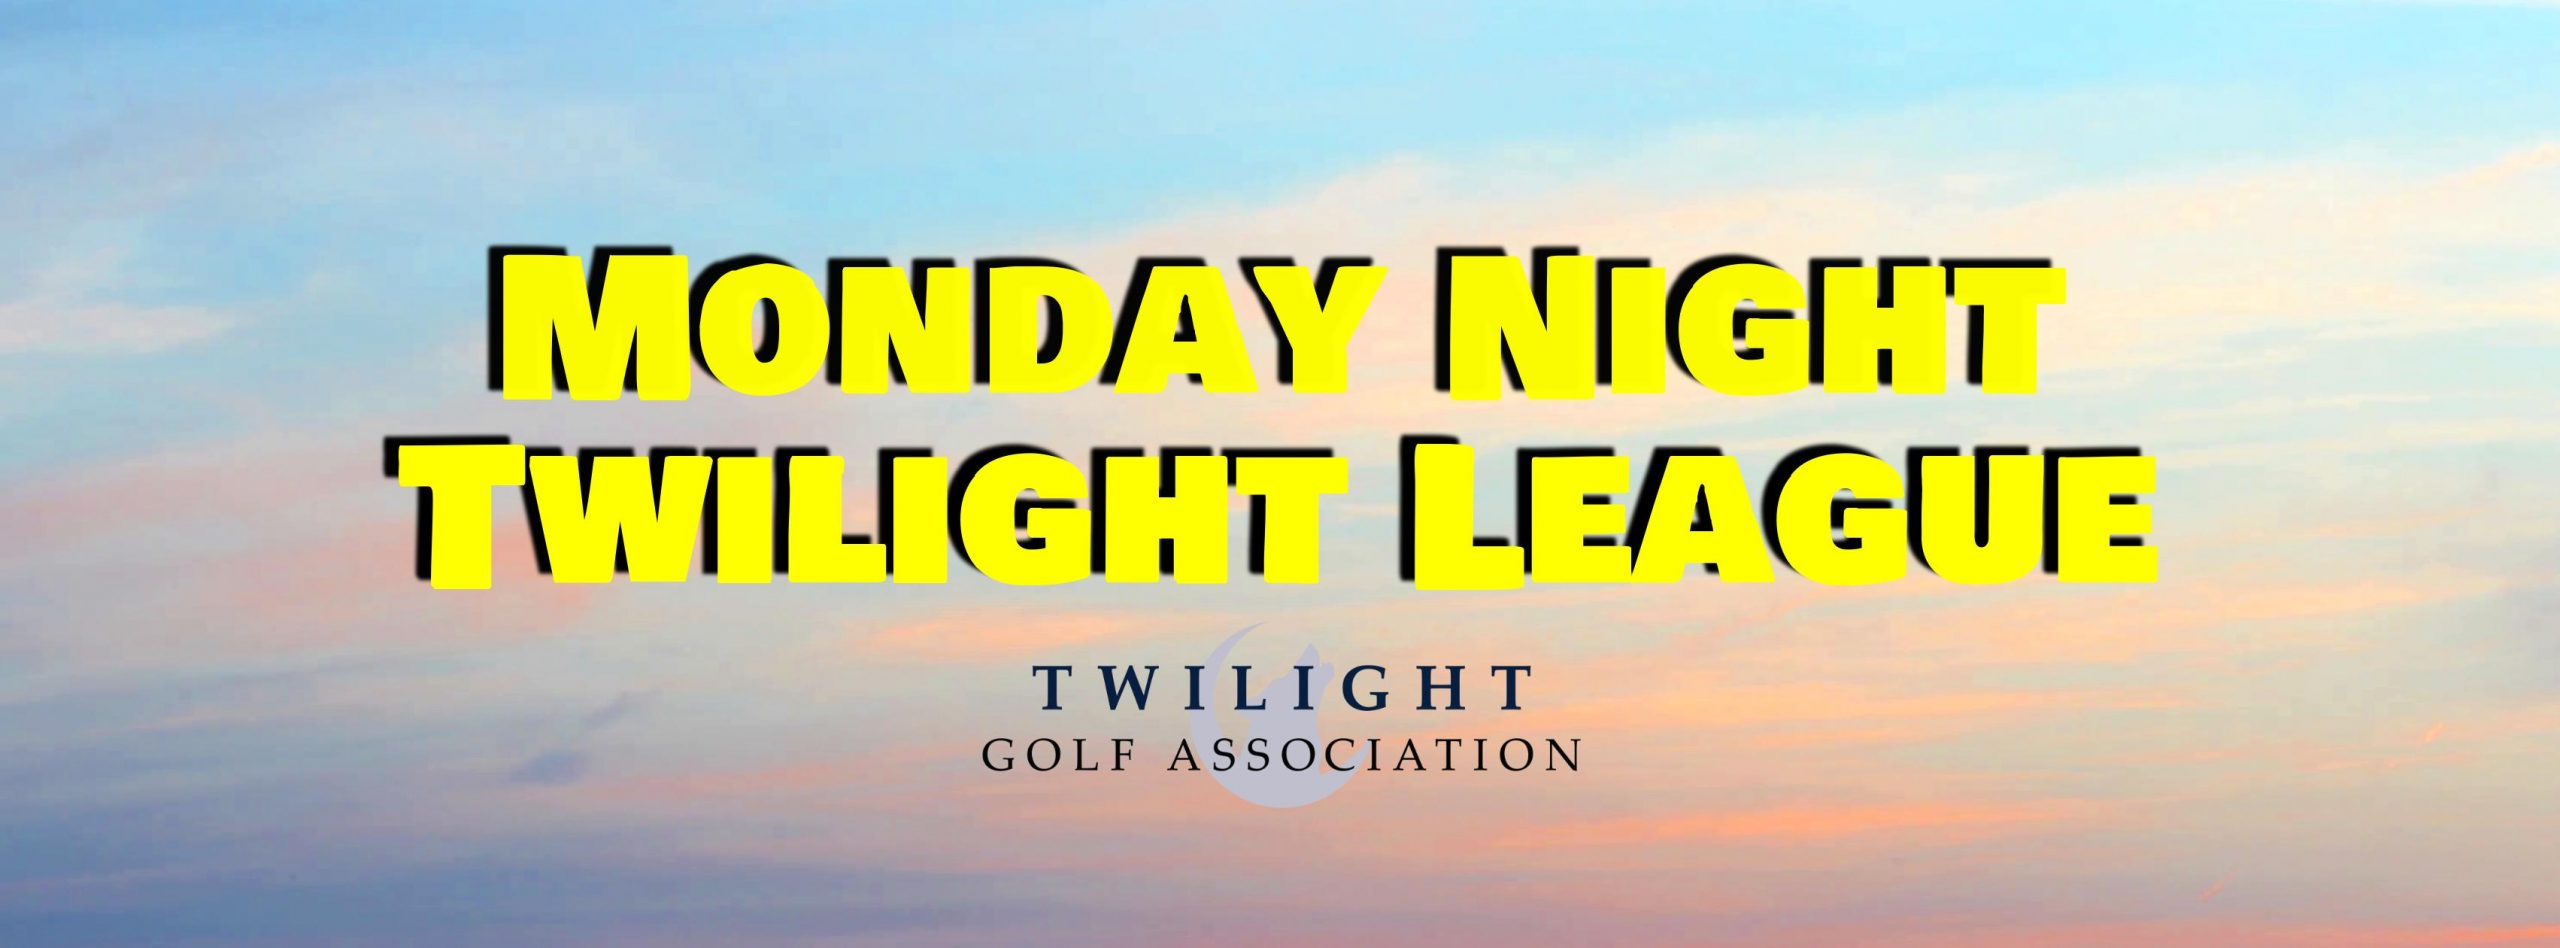 Monday Night Twilight League at Eastlyn Golf Course